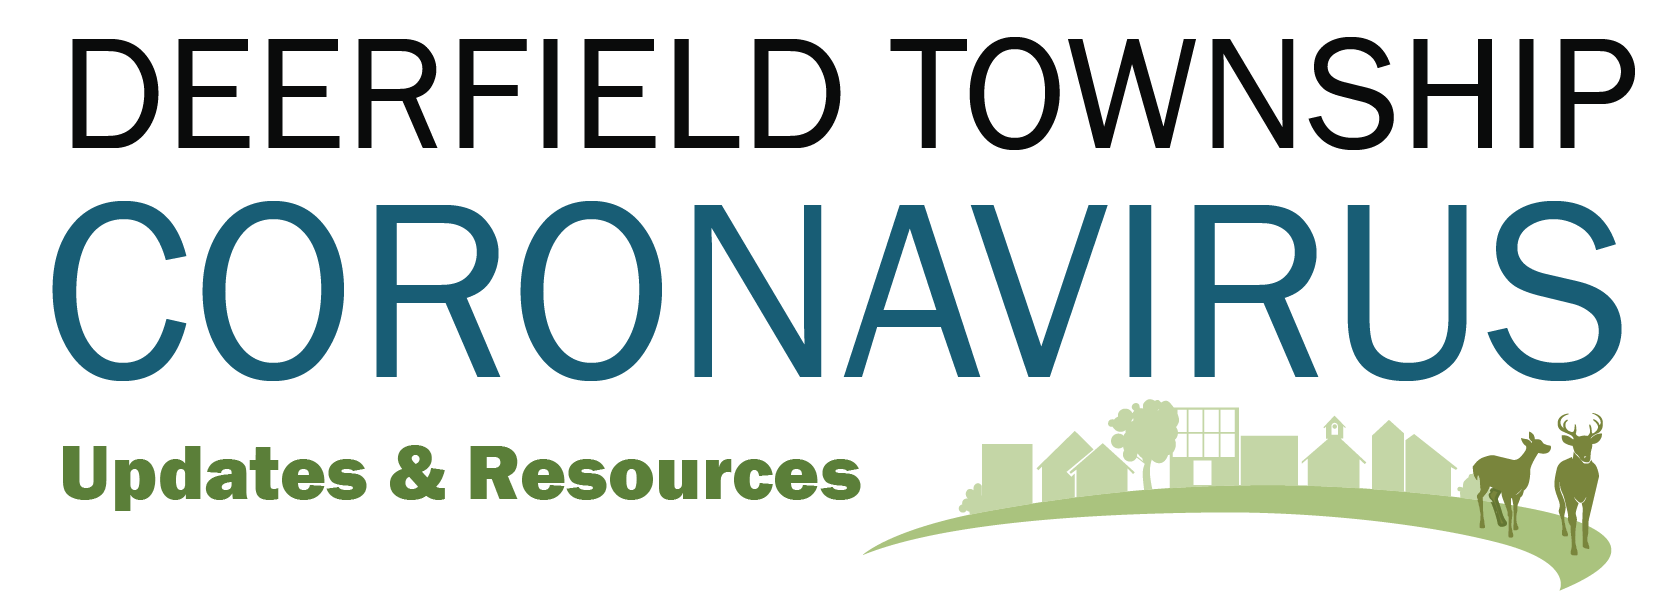 Deerfield Township Coronavirus Updates and Resources